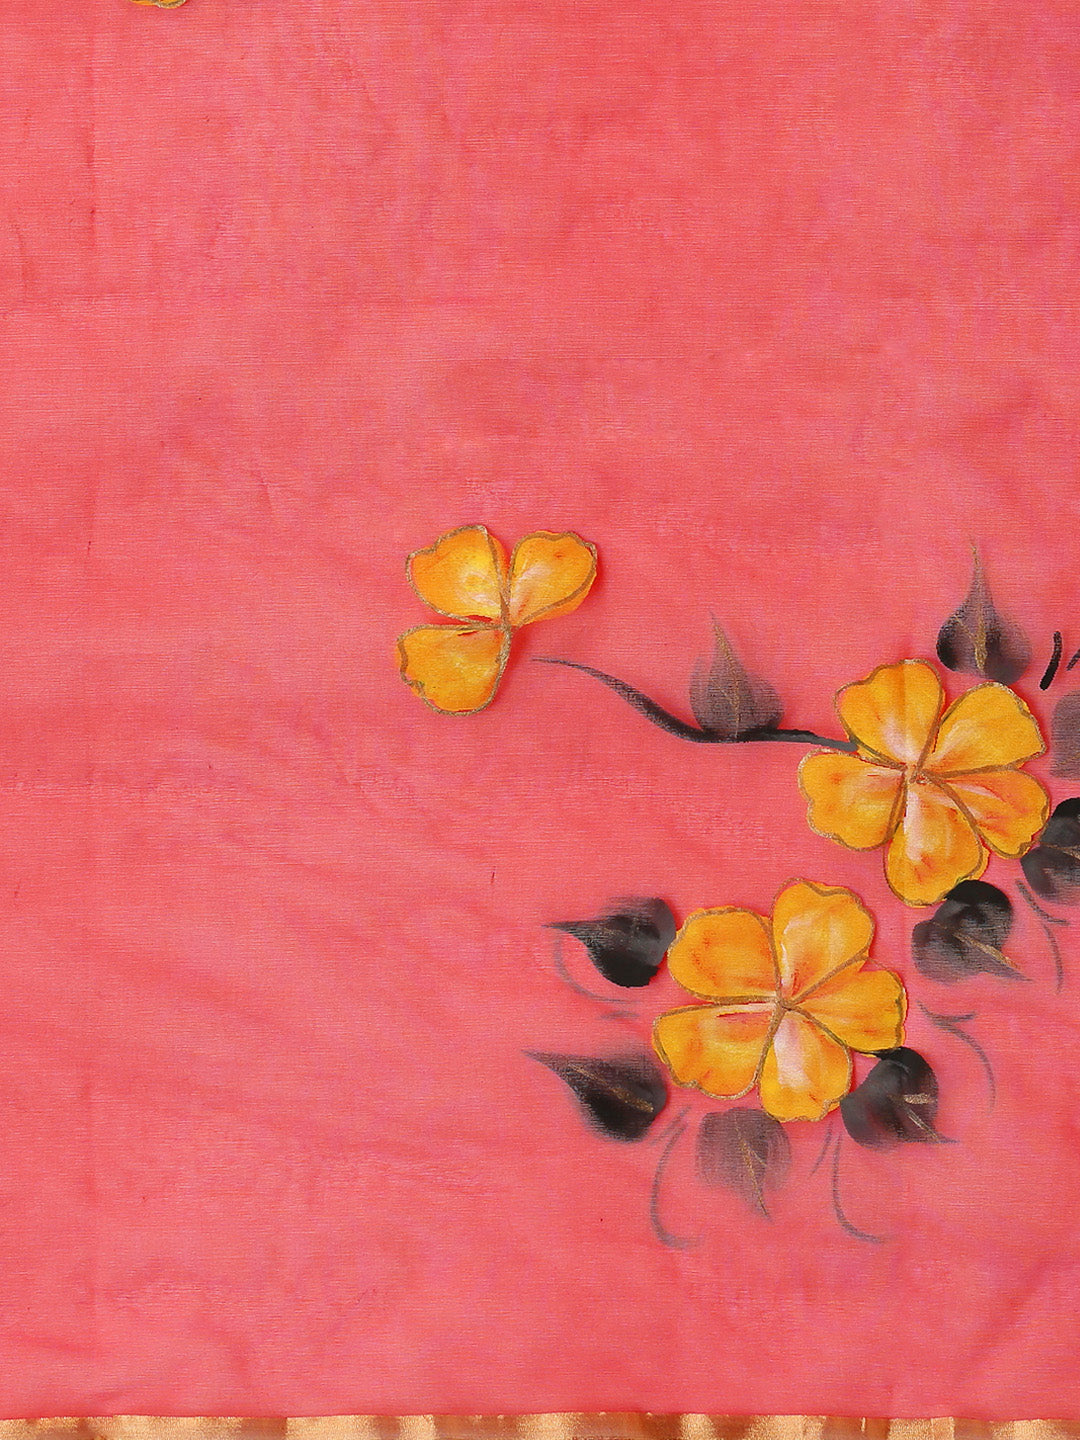 Red & Yellow Hand Painted Organza Saree-Saree-Kalakari India-BHKPSA0127-Hand Painted, Organza, Sarees, Sustainable Fabrics, Traditional Weave-[Linen,Ethnic,wear,Fashionista,Handloom,Handicraft,Indigo,blockprint,block,print,Cotton,Chanderi,Blue, latest,classy,party,bollywood,trendy,summer,style,traditional,formal,elegant,unique,style,hand,block,print, dabu,booti,gift,present,glamorous,affordable,collectible,Sari,Saree,printed, holi, Diwali, birthday, anniversary, sustainable, organic, scarf, onli